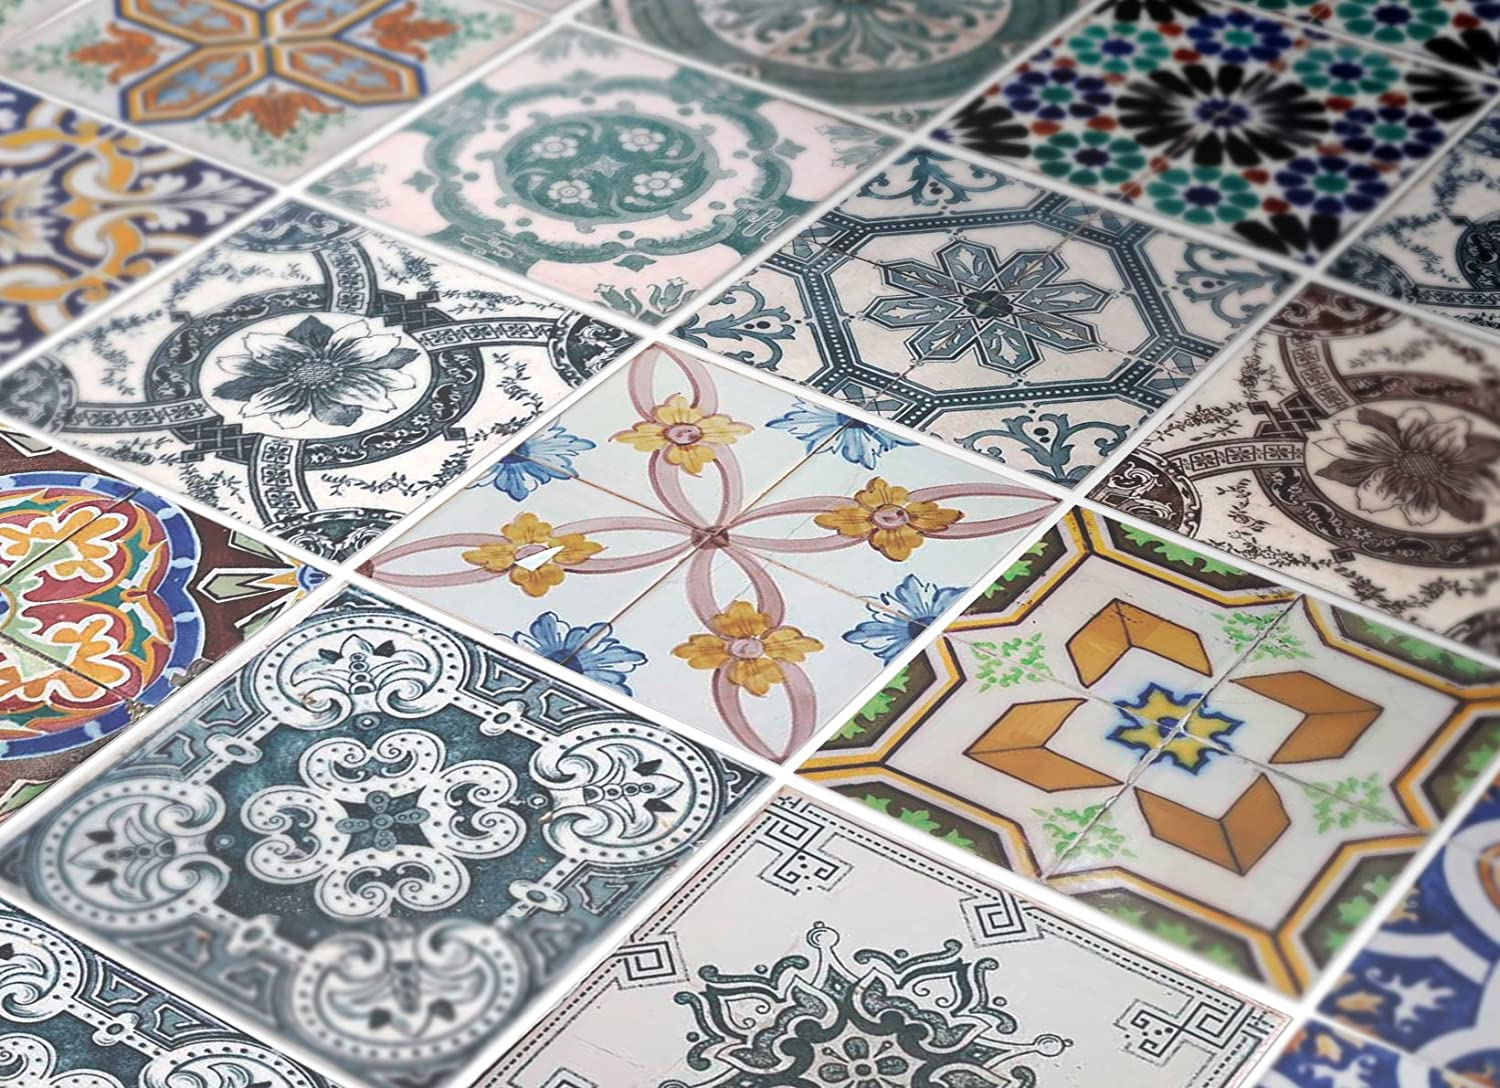 Amazon tiles stickers decals packs with 48 tiles 39 x 39 amazon tiles stickers decals packs with 48 tiles 39 x 39 inches wall art tile sticker portuguese tiles pattern decal home kitchen dailygadgetfo Choice Image